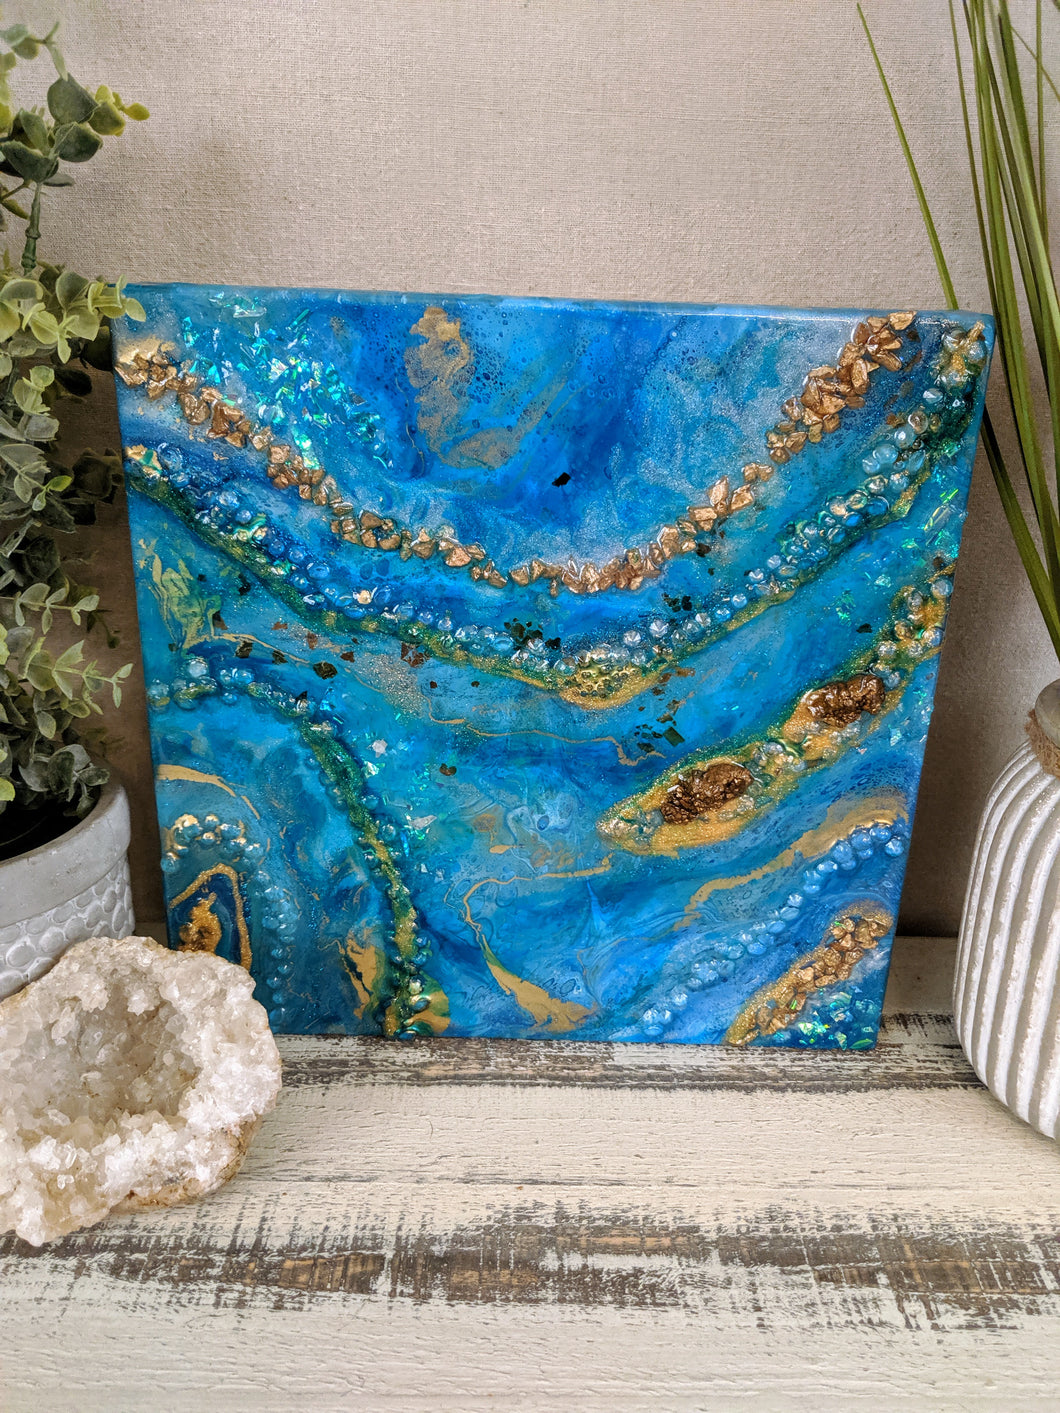 abstract fluid resin painting vibrant blue teal green gold colors with fire glass